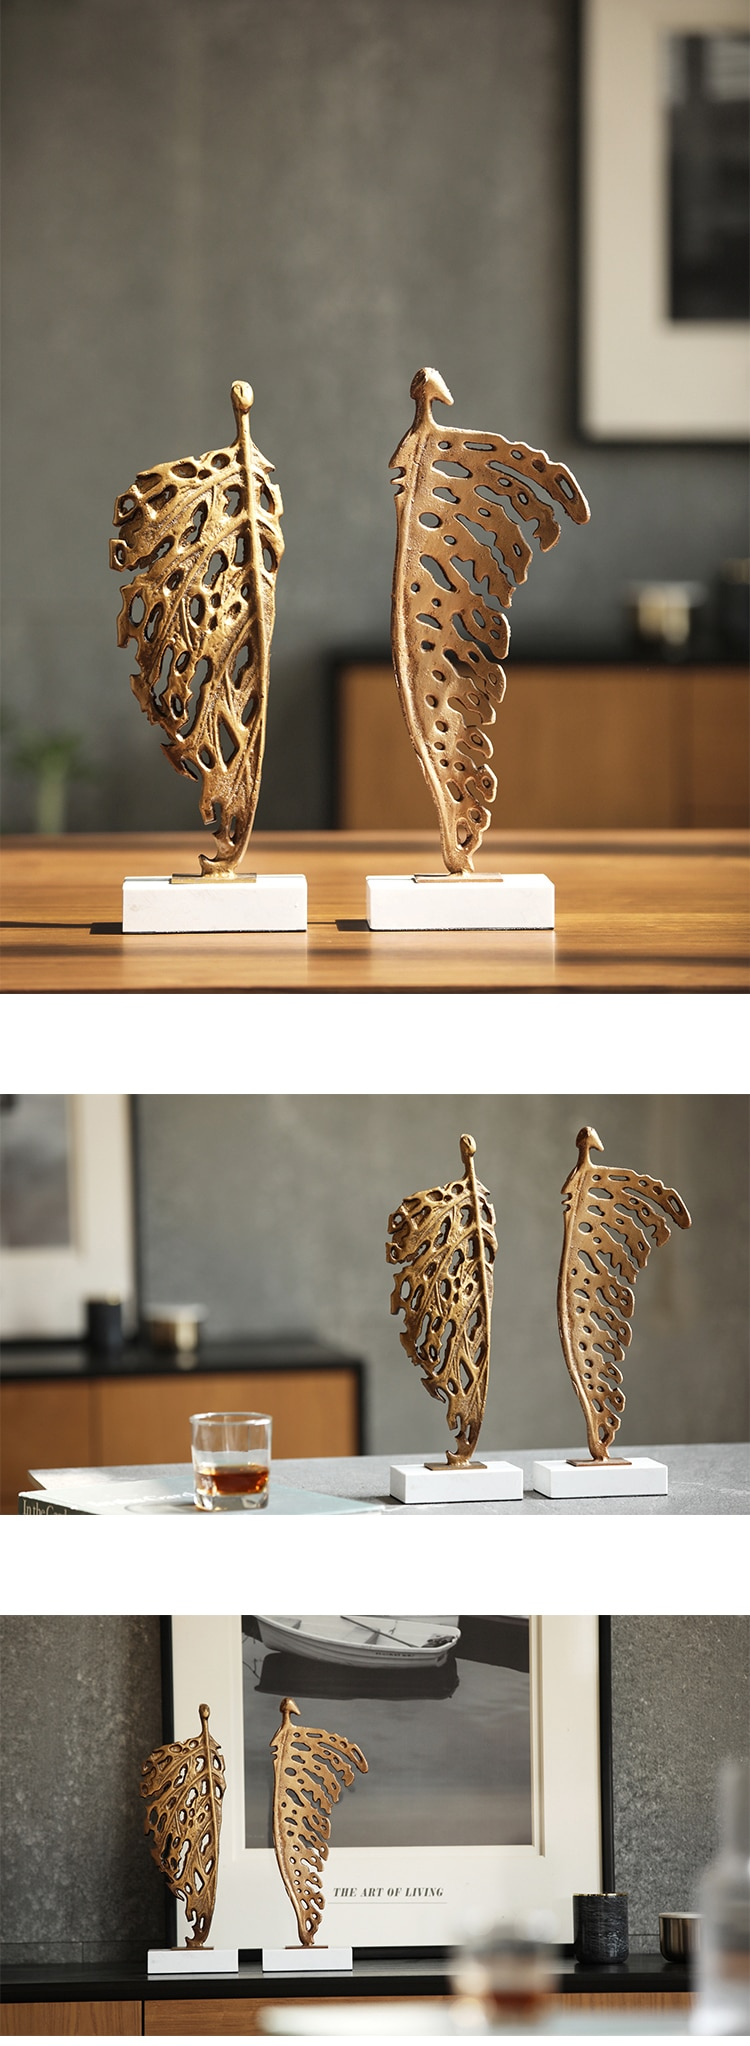 Flying Male Female Characters Metal Figures Sculpture Marble Crafts Home Decoration Accessories Abstract Statues Ornaments Gifts